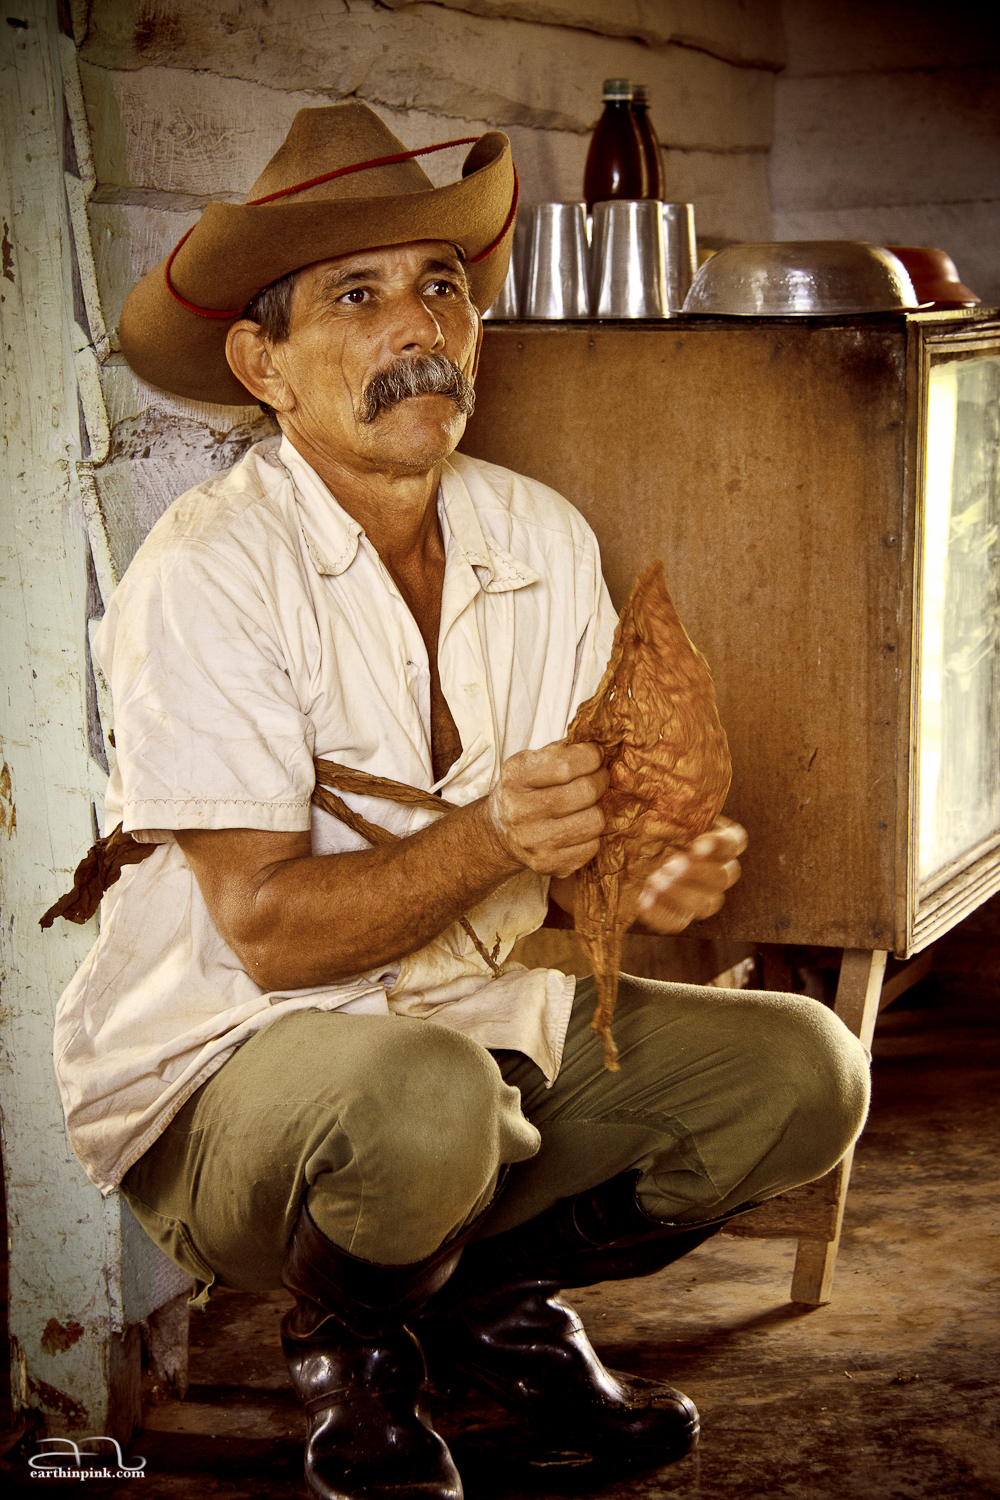 Tobacco farmer in Viñales, Cuba, demonstrating how to roll a cigar